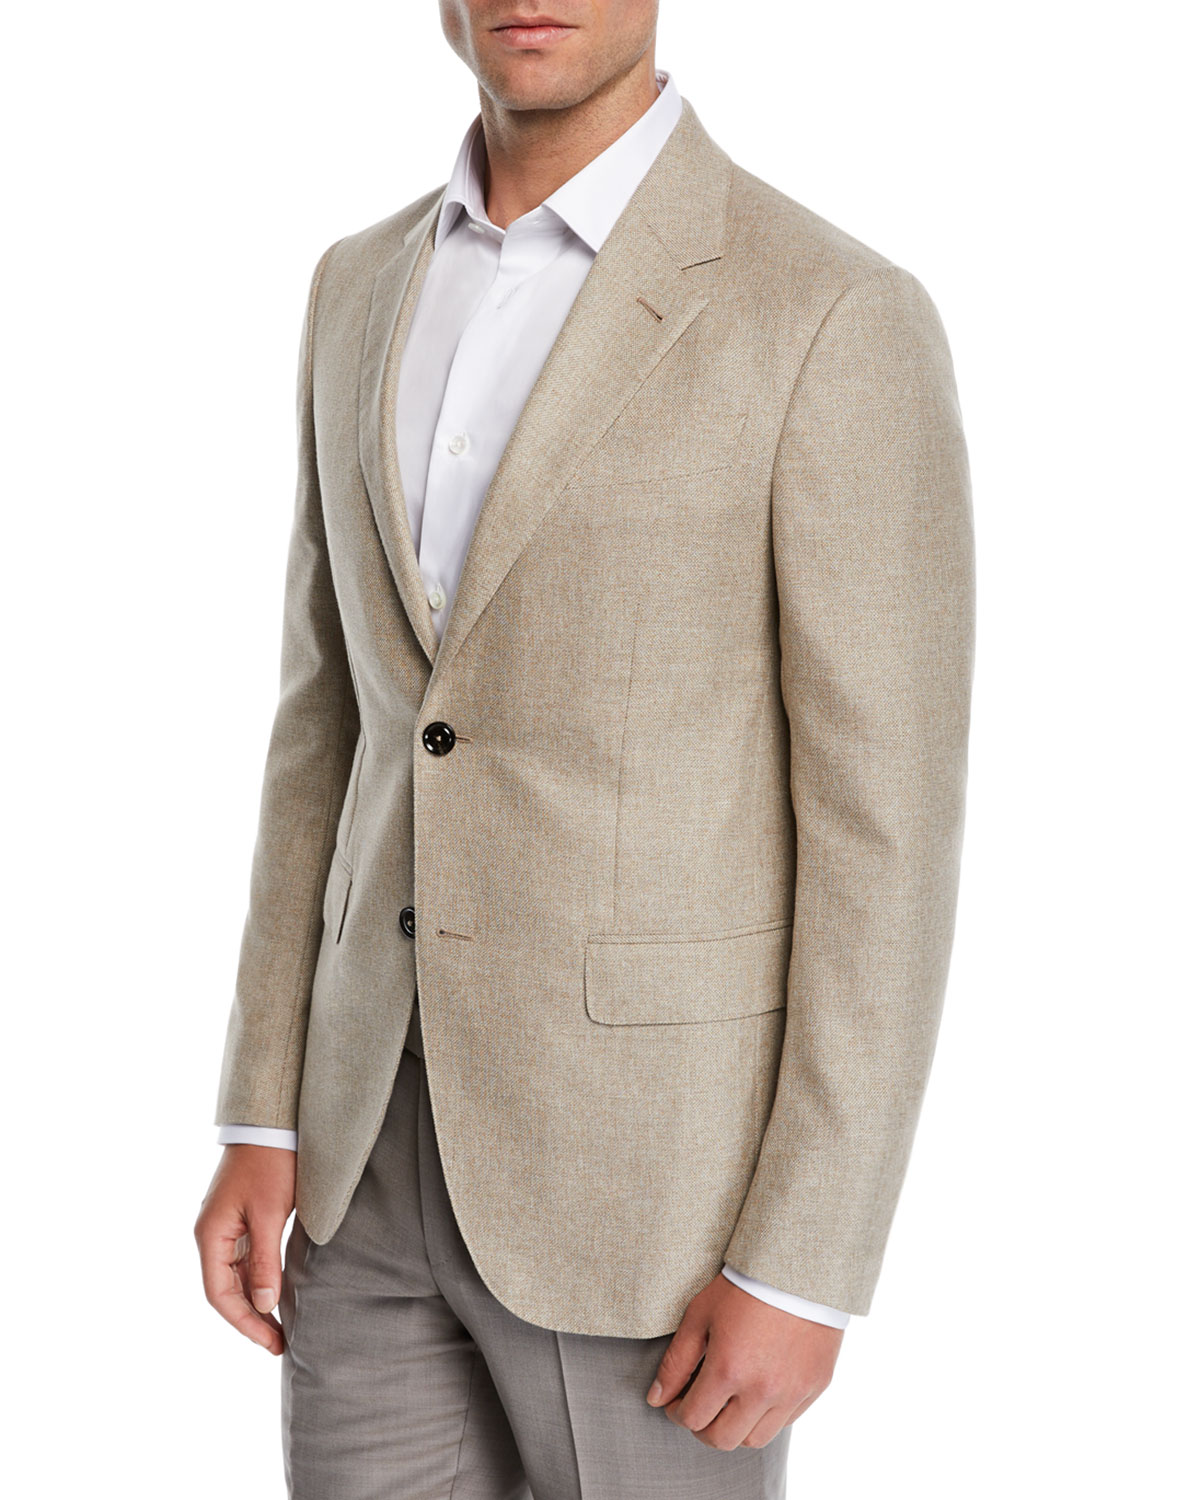 Ermenegildo Zegna Men's Cotton Blazer